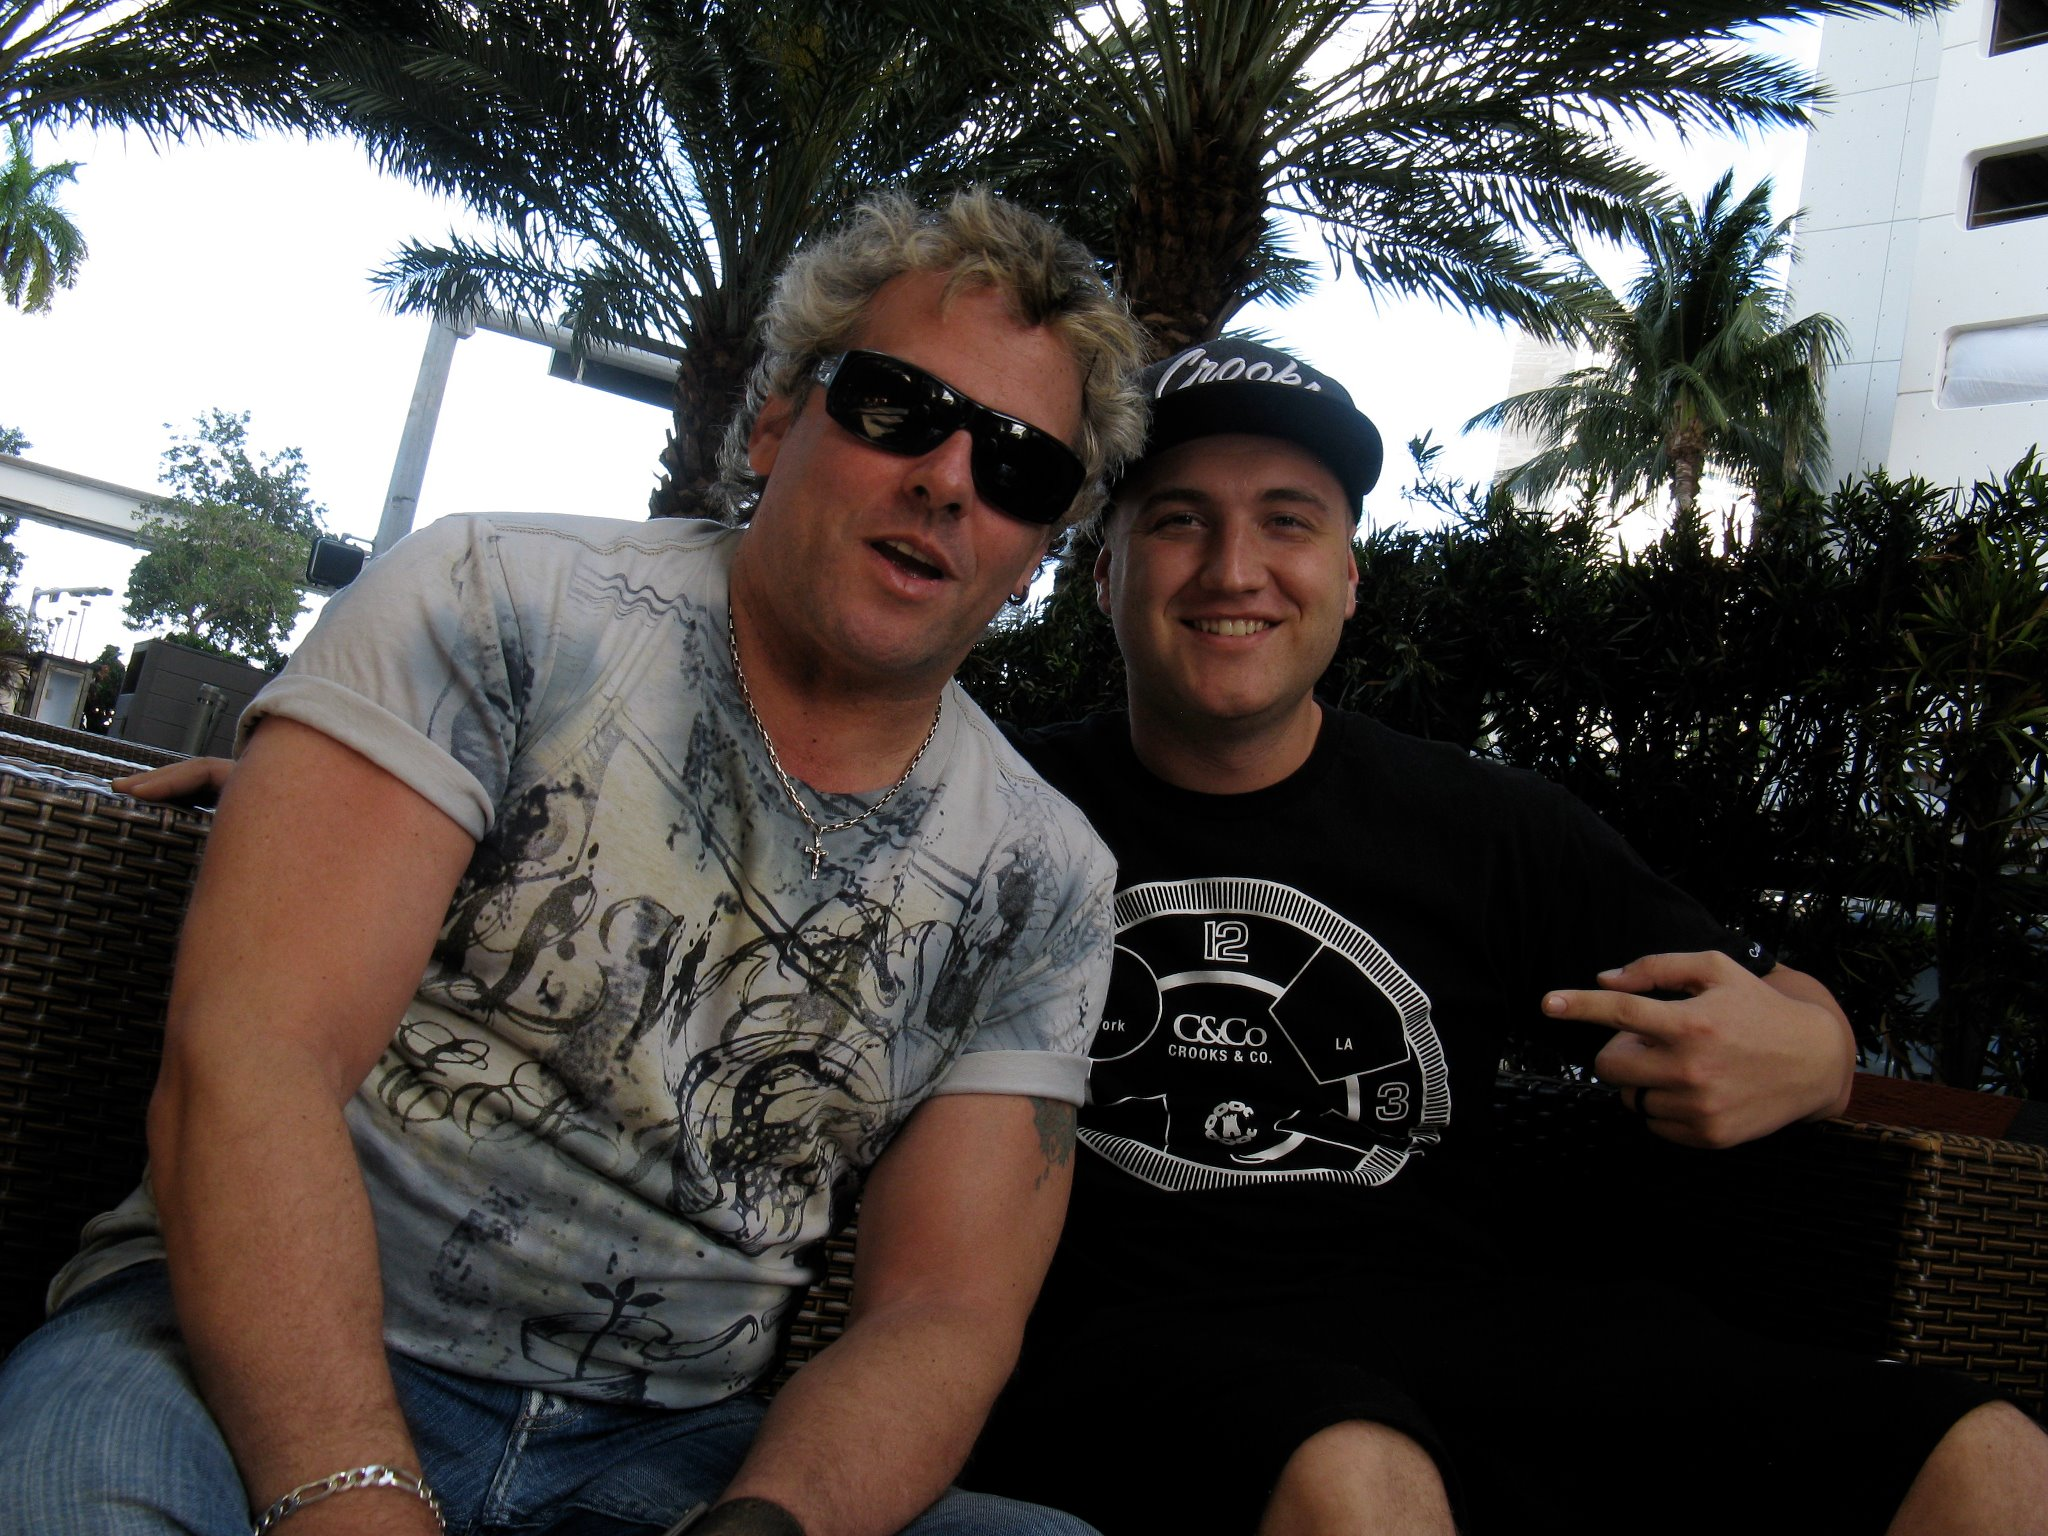 Steve Thompson with Nick Hogangetting ready to DJ at Ultra Music Festival .